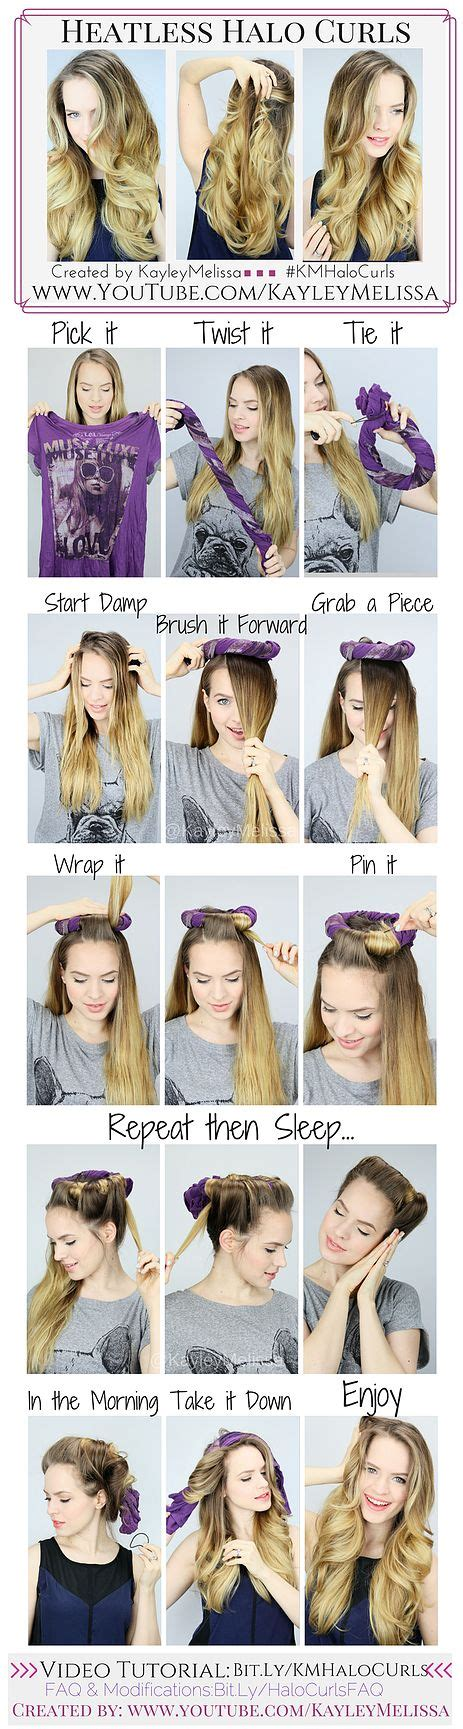 heatless hairstyles for school pinterest kayleymelissa heatless halo curls hair pinterest